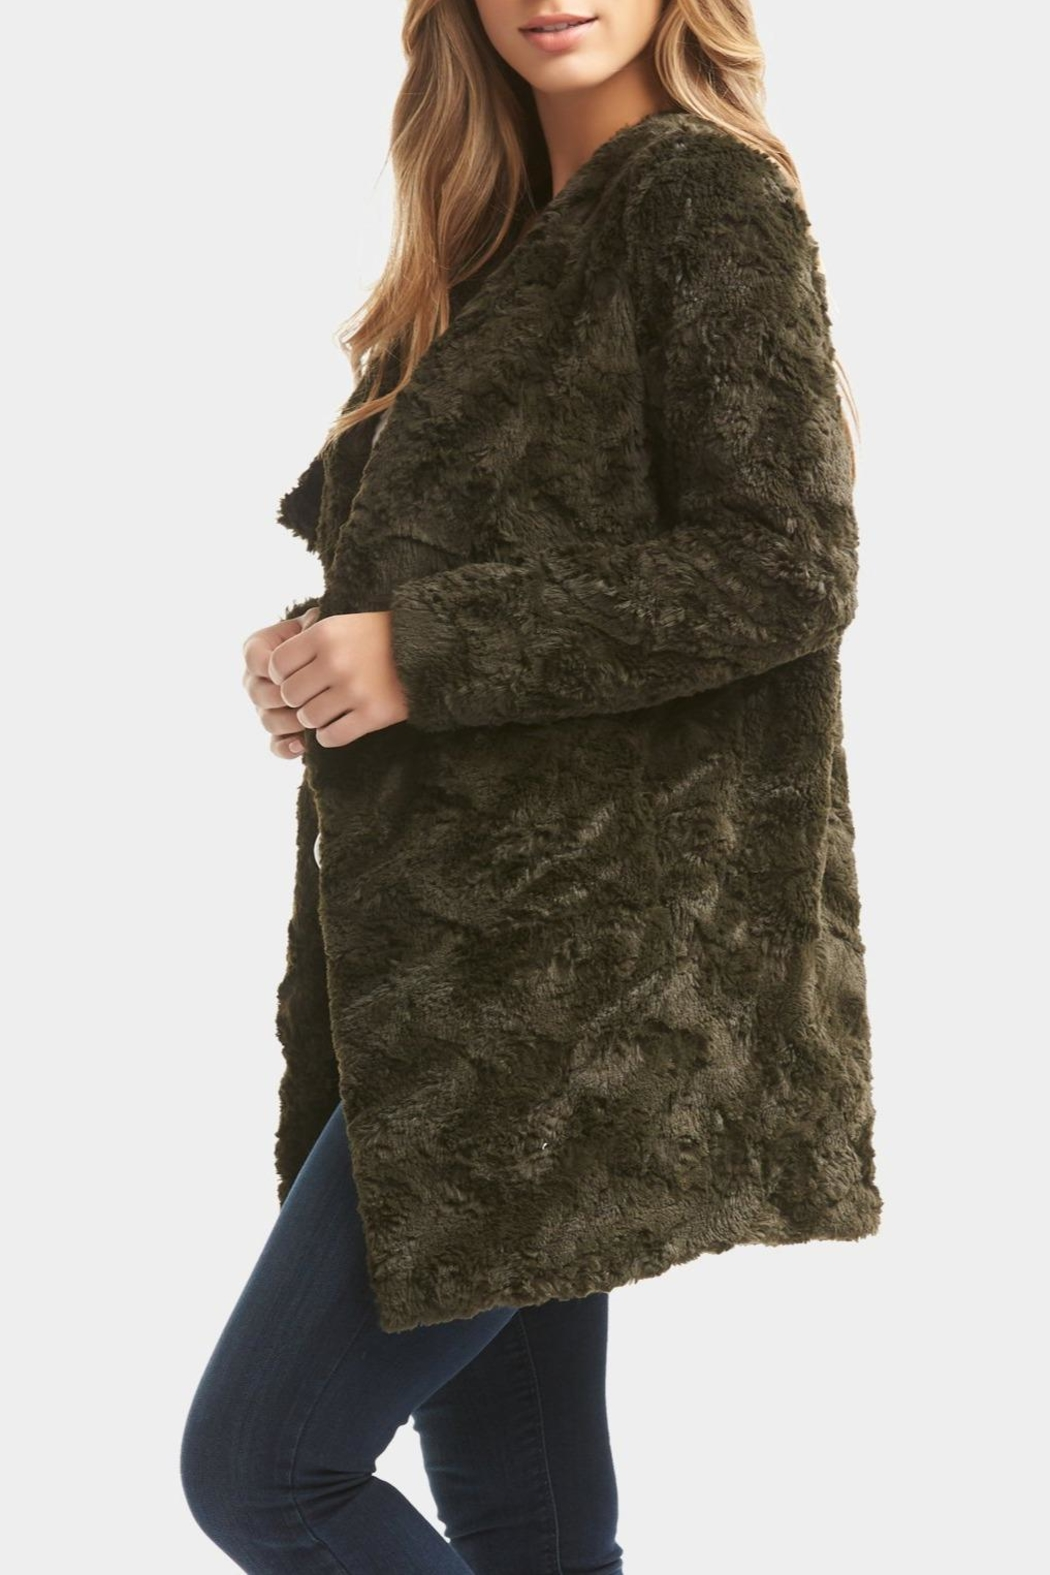 Tart Collections Olive Arabella Coat - Side Cropped Image